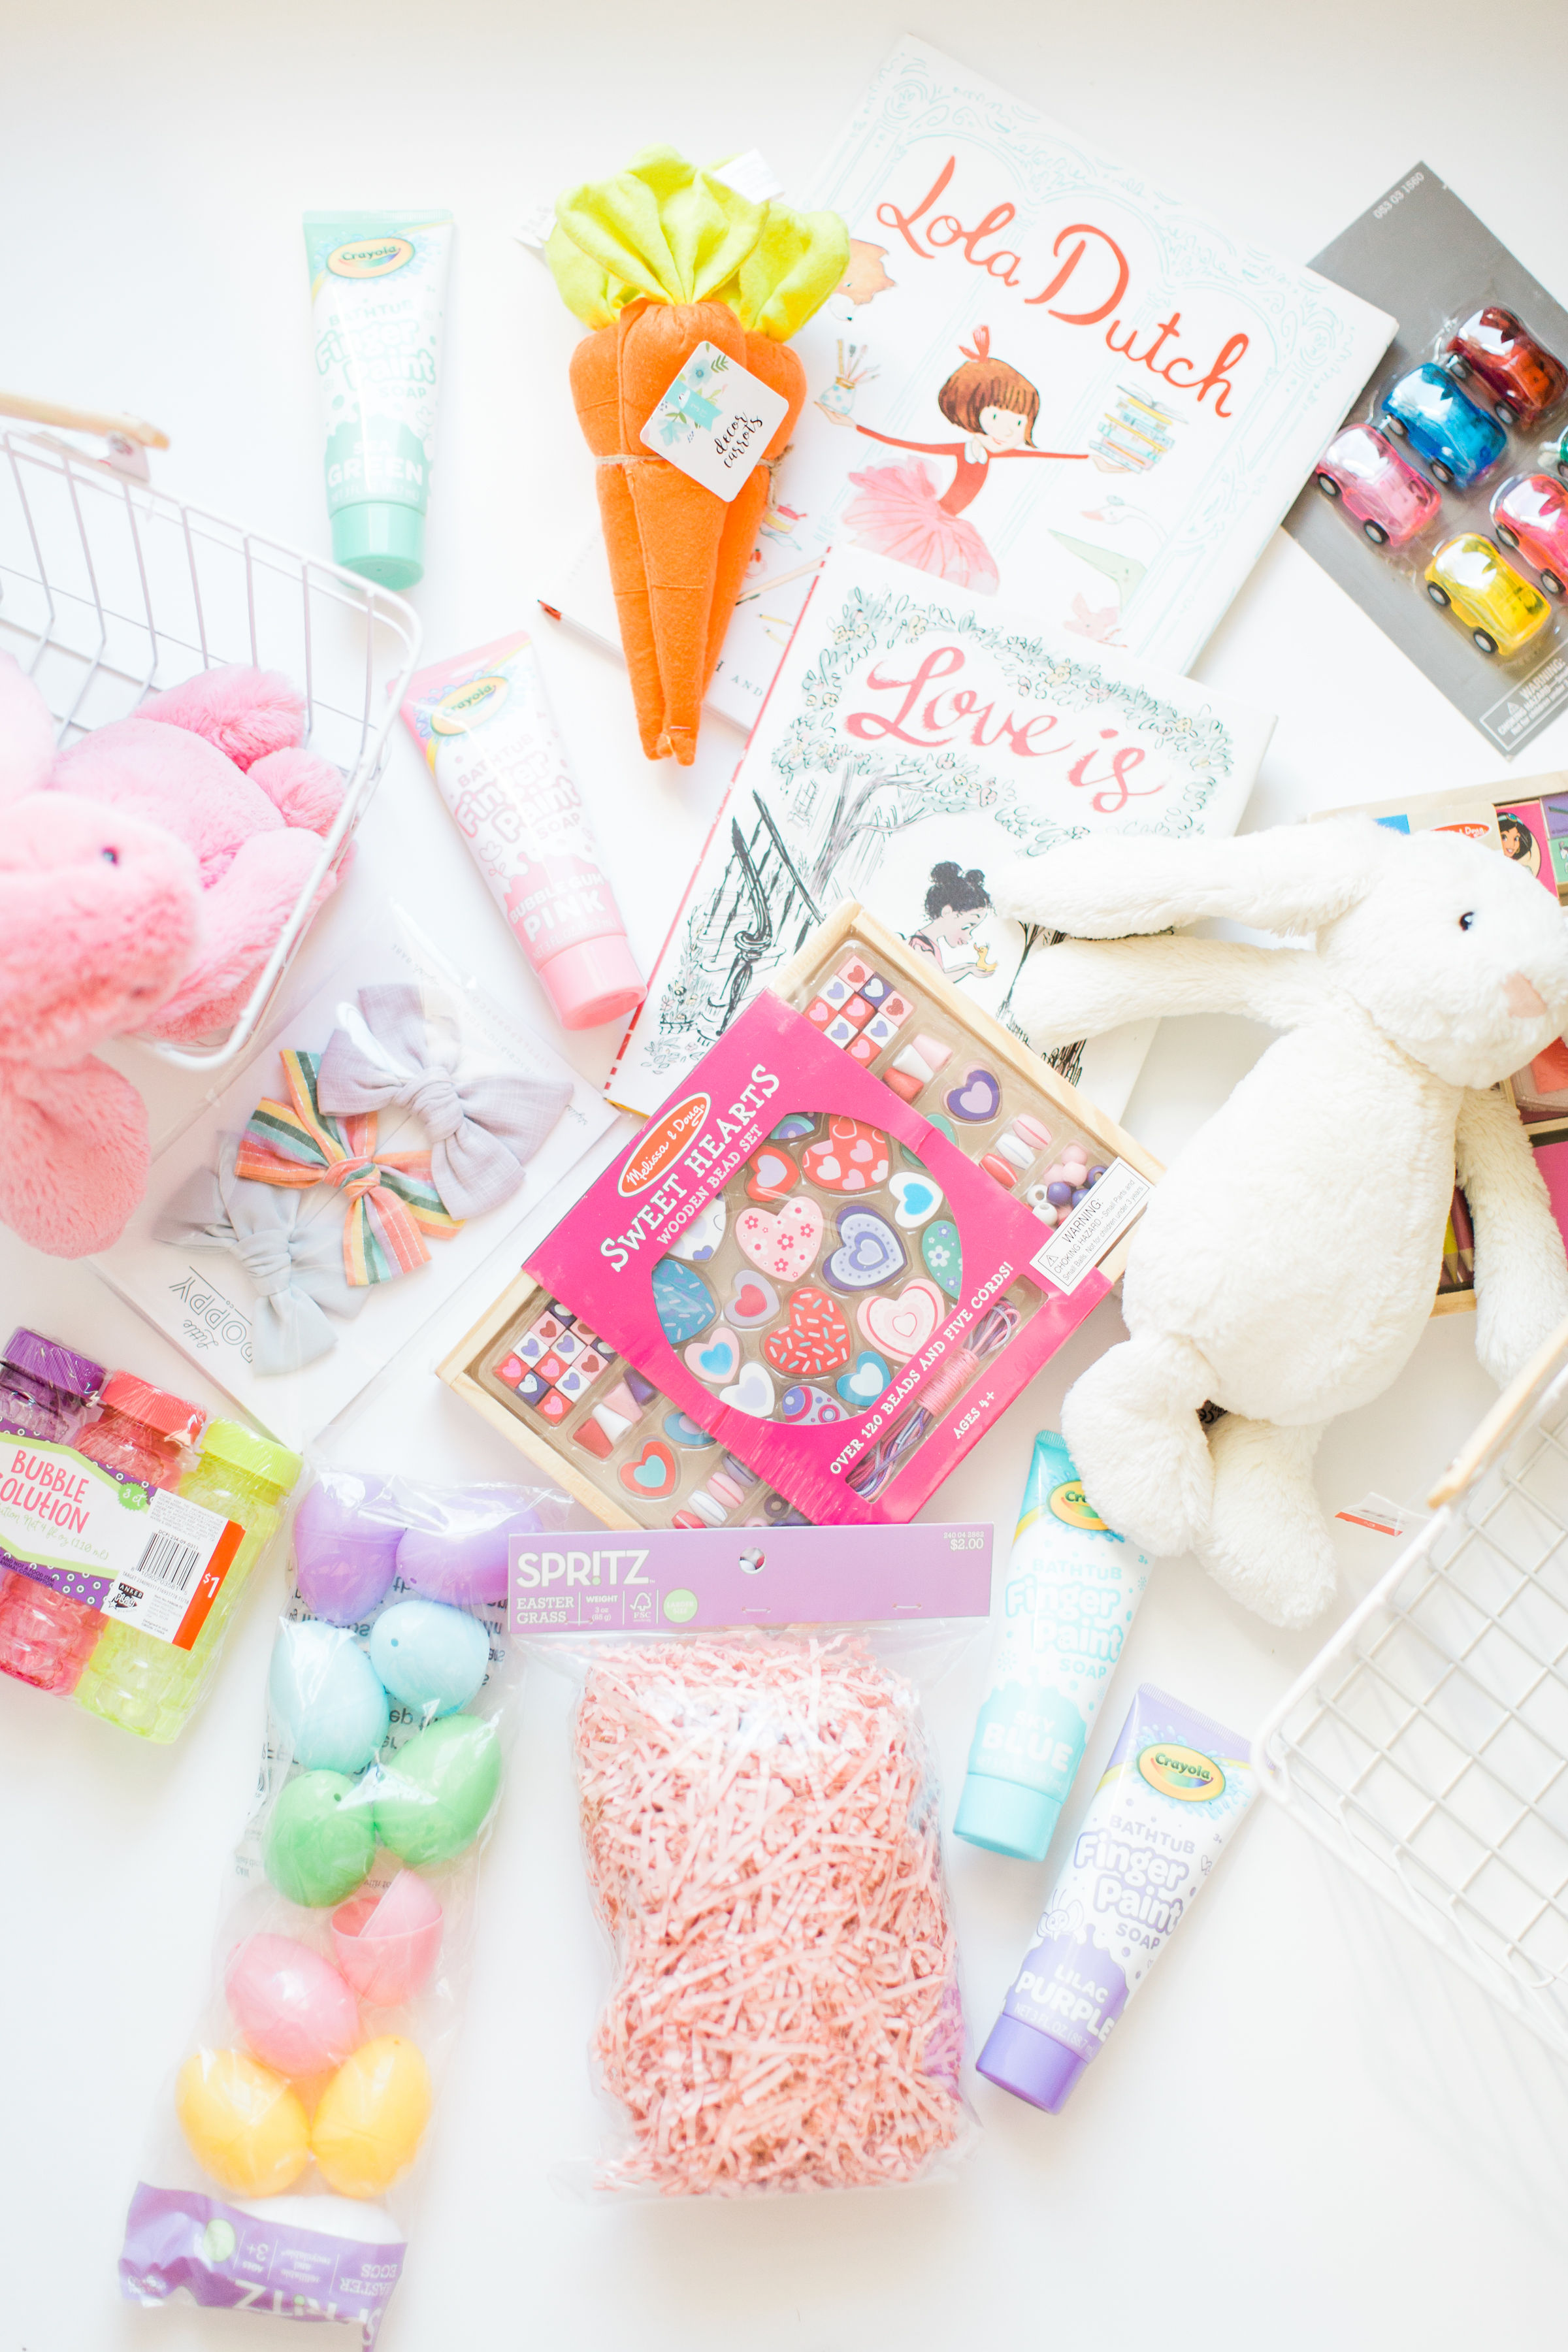 Get inspired this spring and put together the sweetest DIY Easter baskets for your kids. We're showing you everything we put in our own kids' Easter baskets this year and how to make your own! | glitterinc.com | @glitterinc